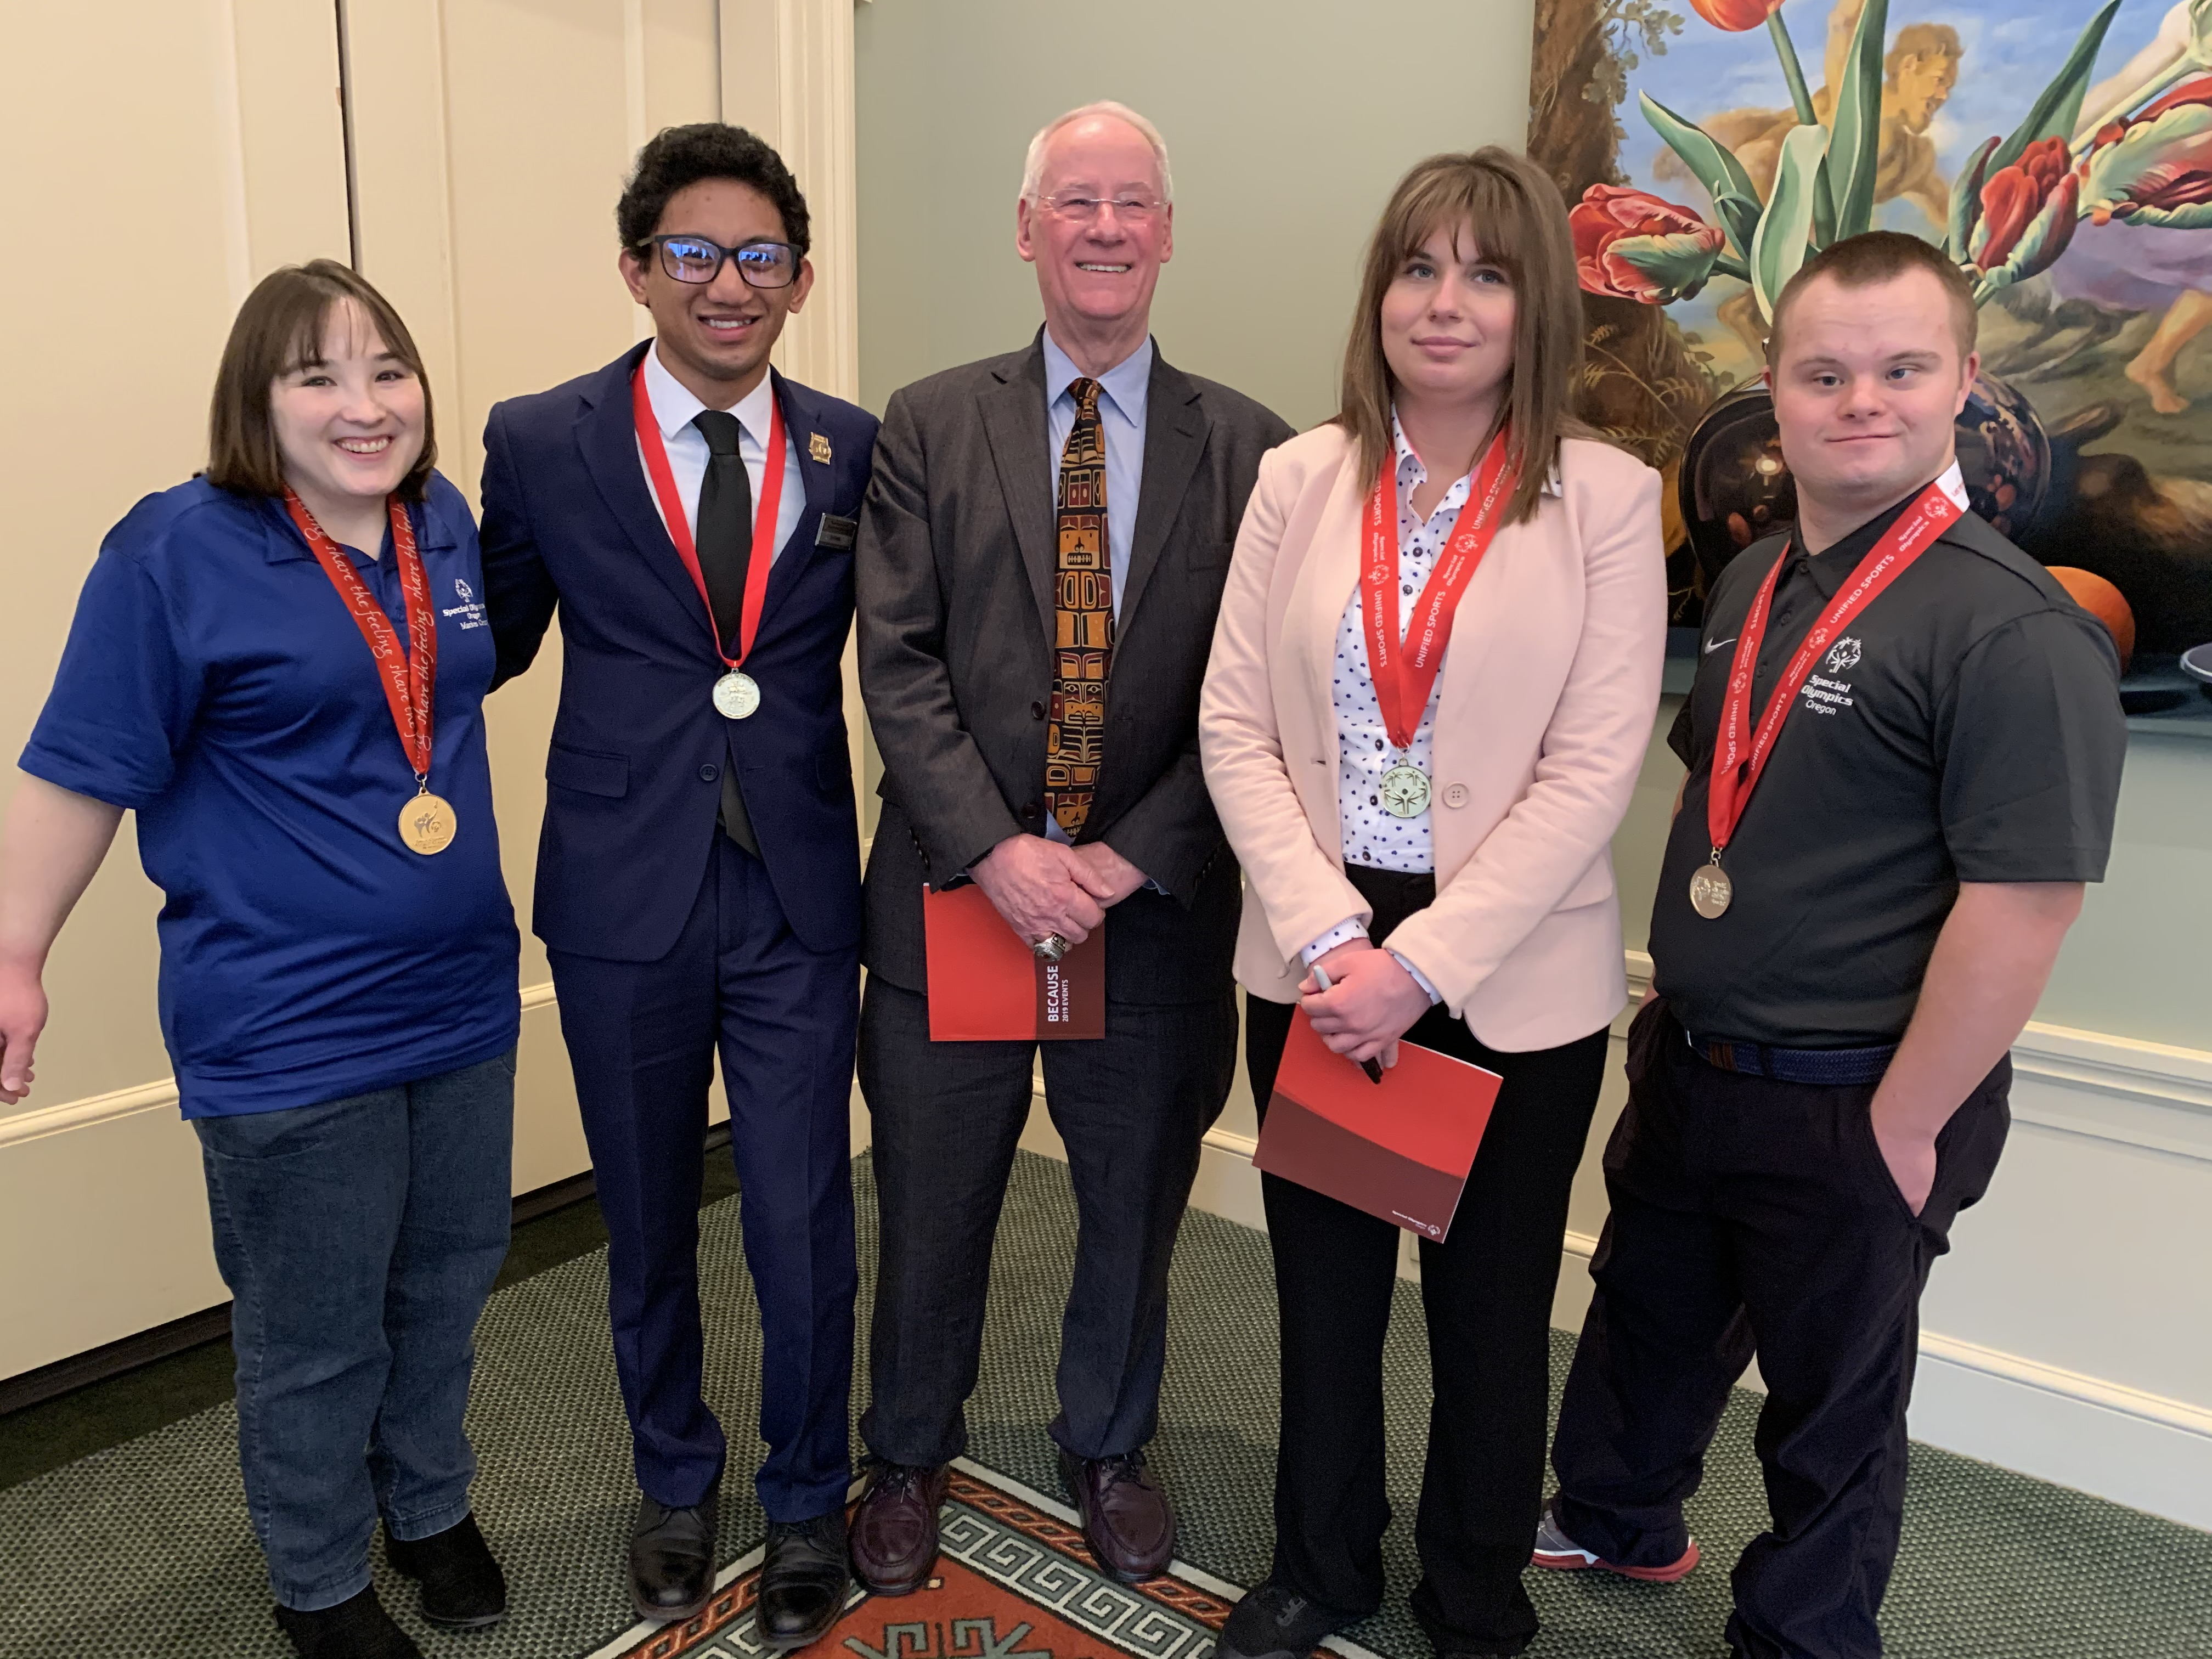 Dr. Ed Ray standing with 4 SOOR athletes